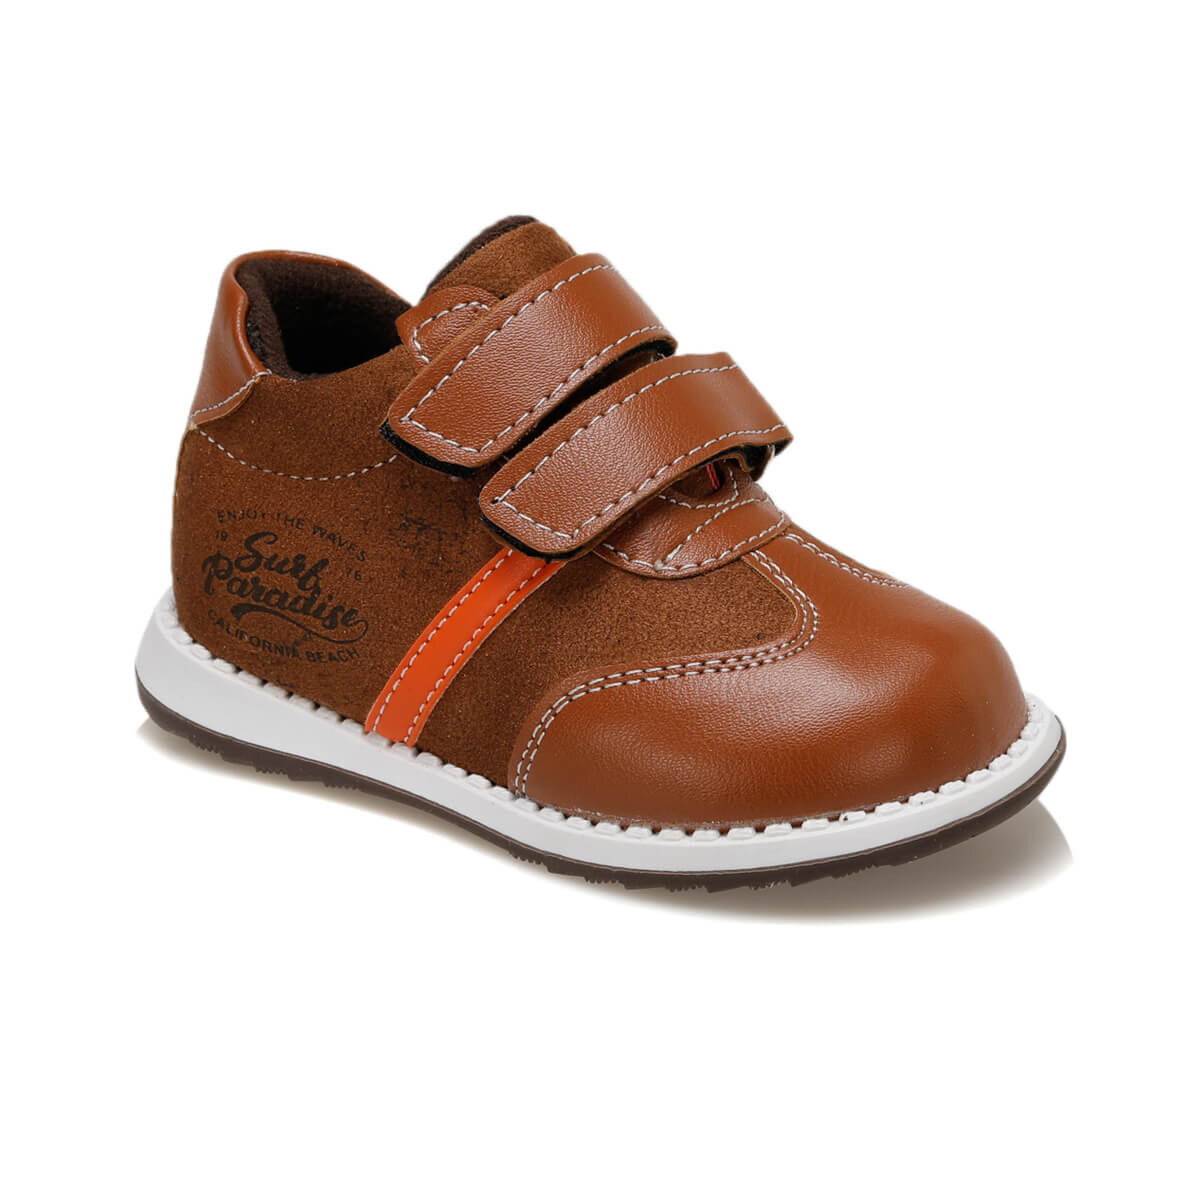 FLO 92.511713.B Brown Male Child Shoes Polaris